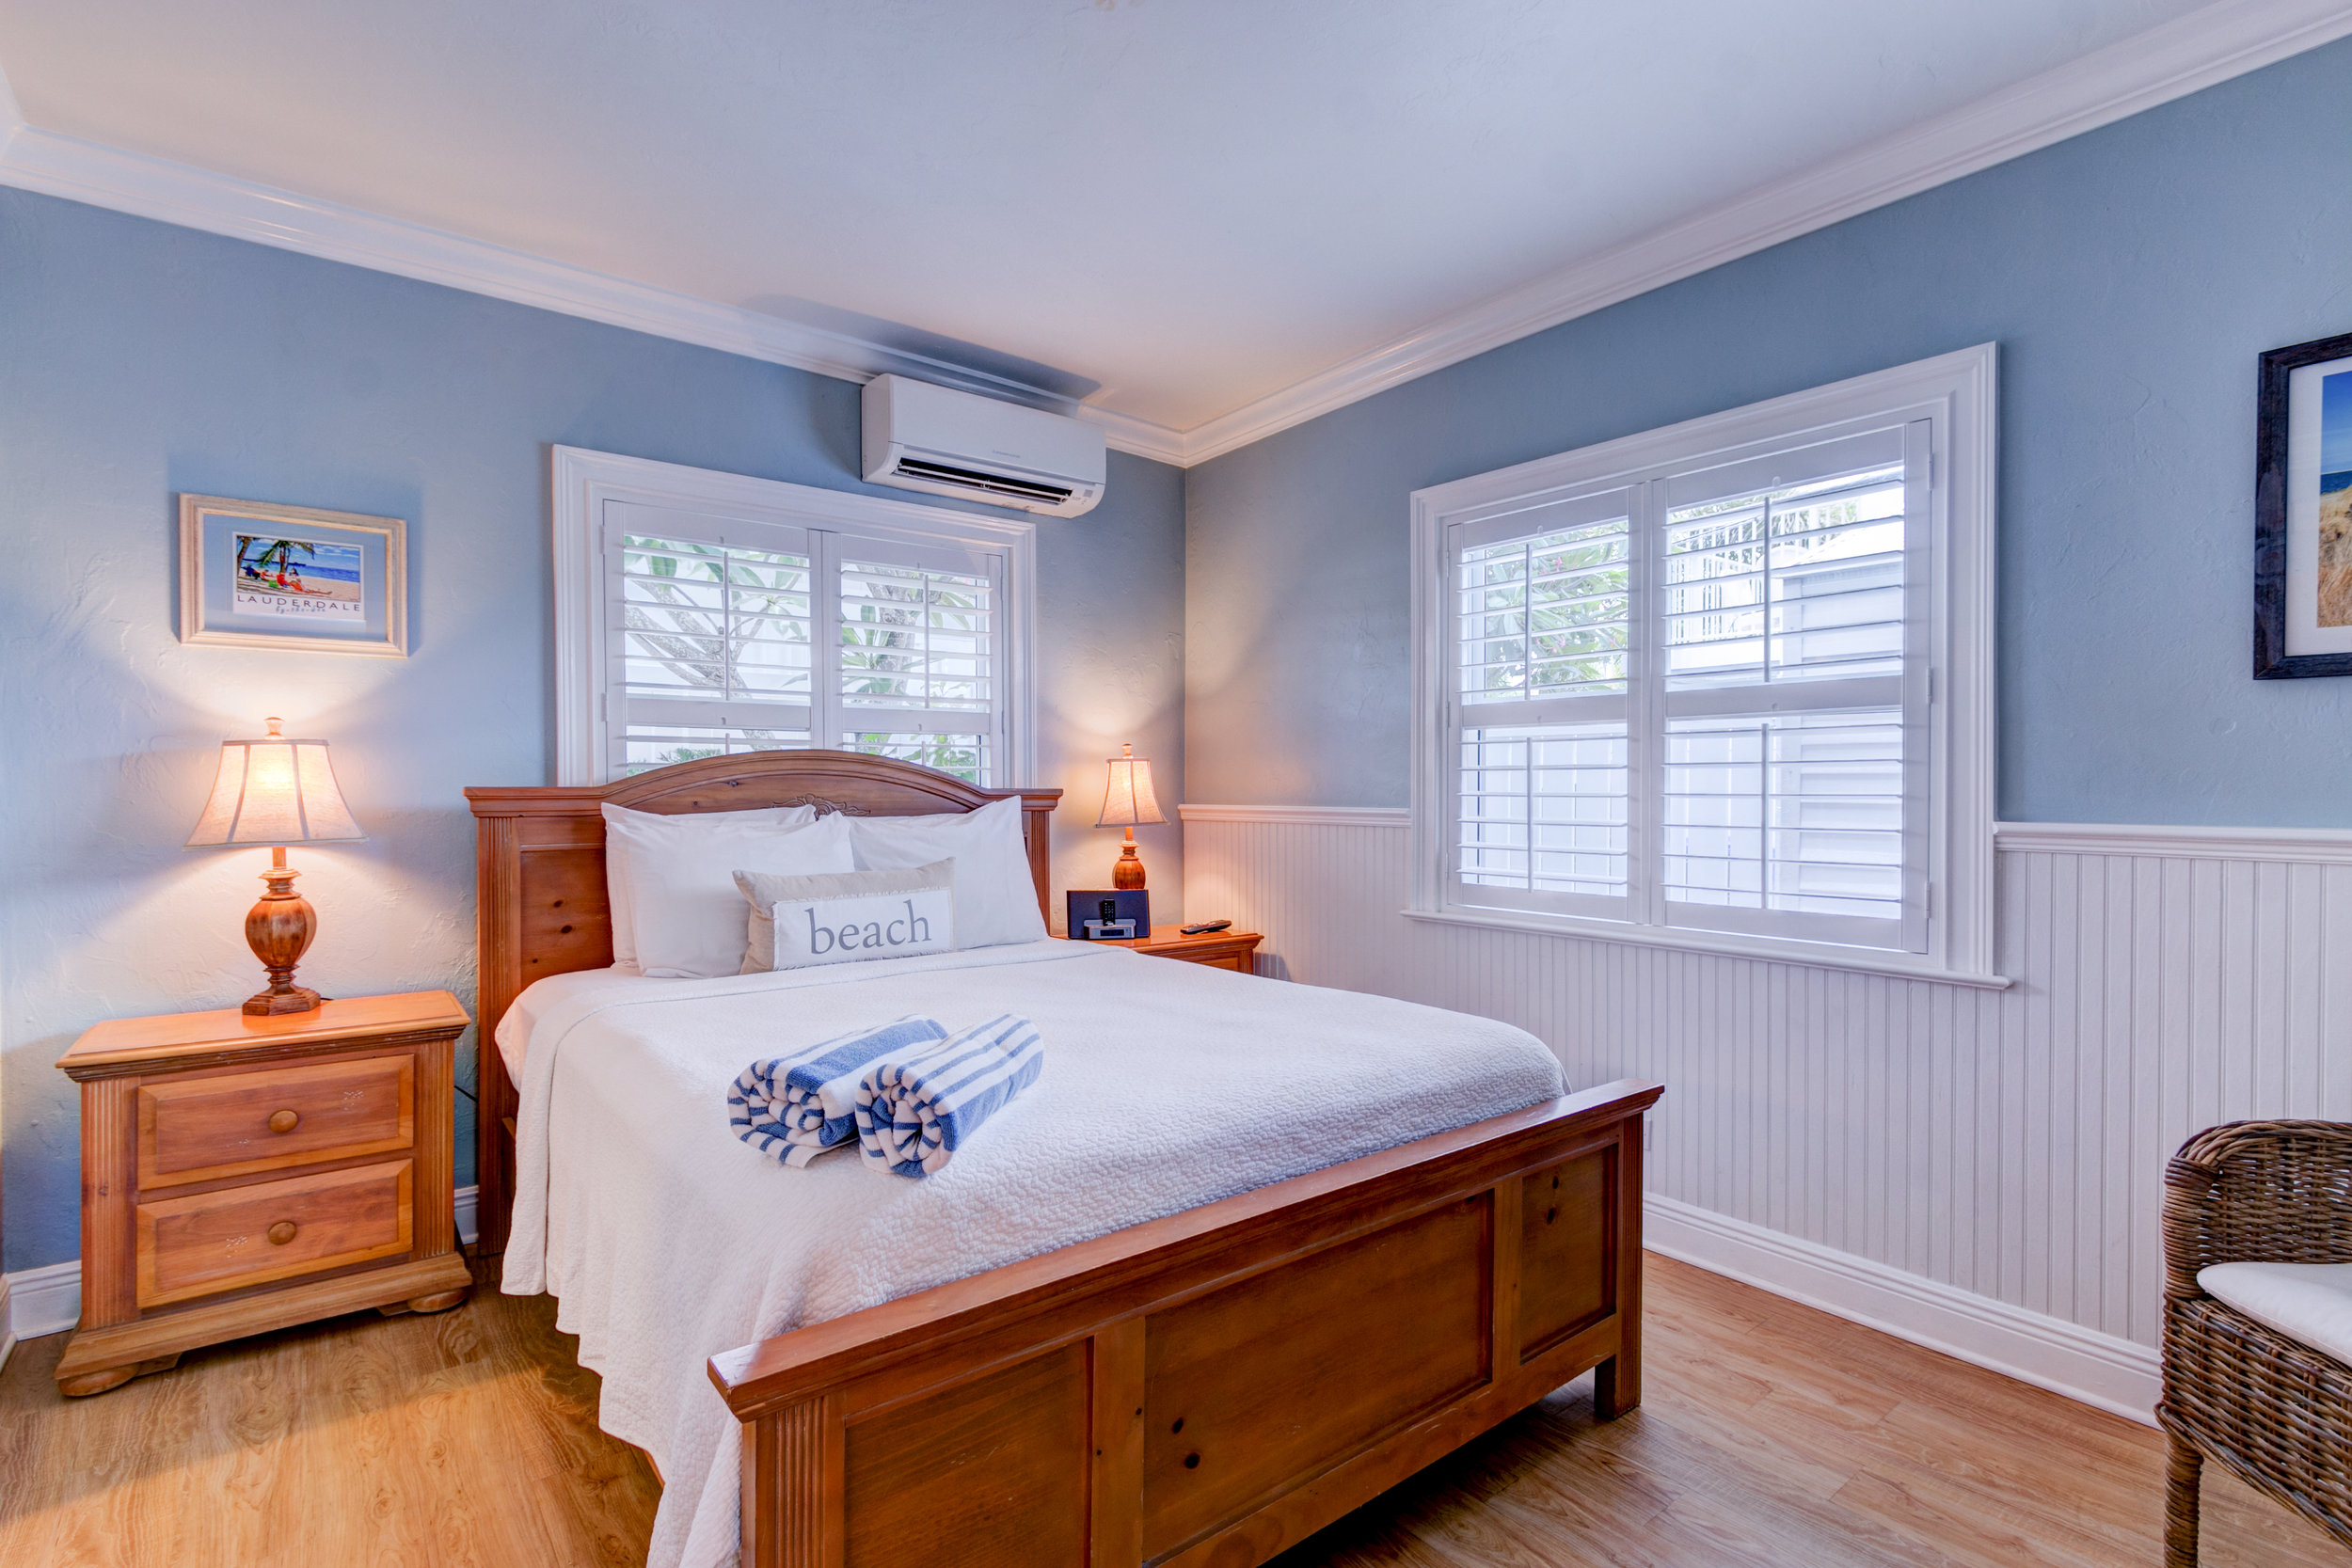 Beachhouse Suite Bedroom.jpg